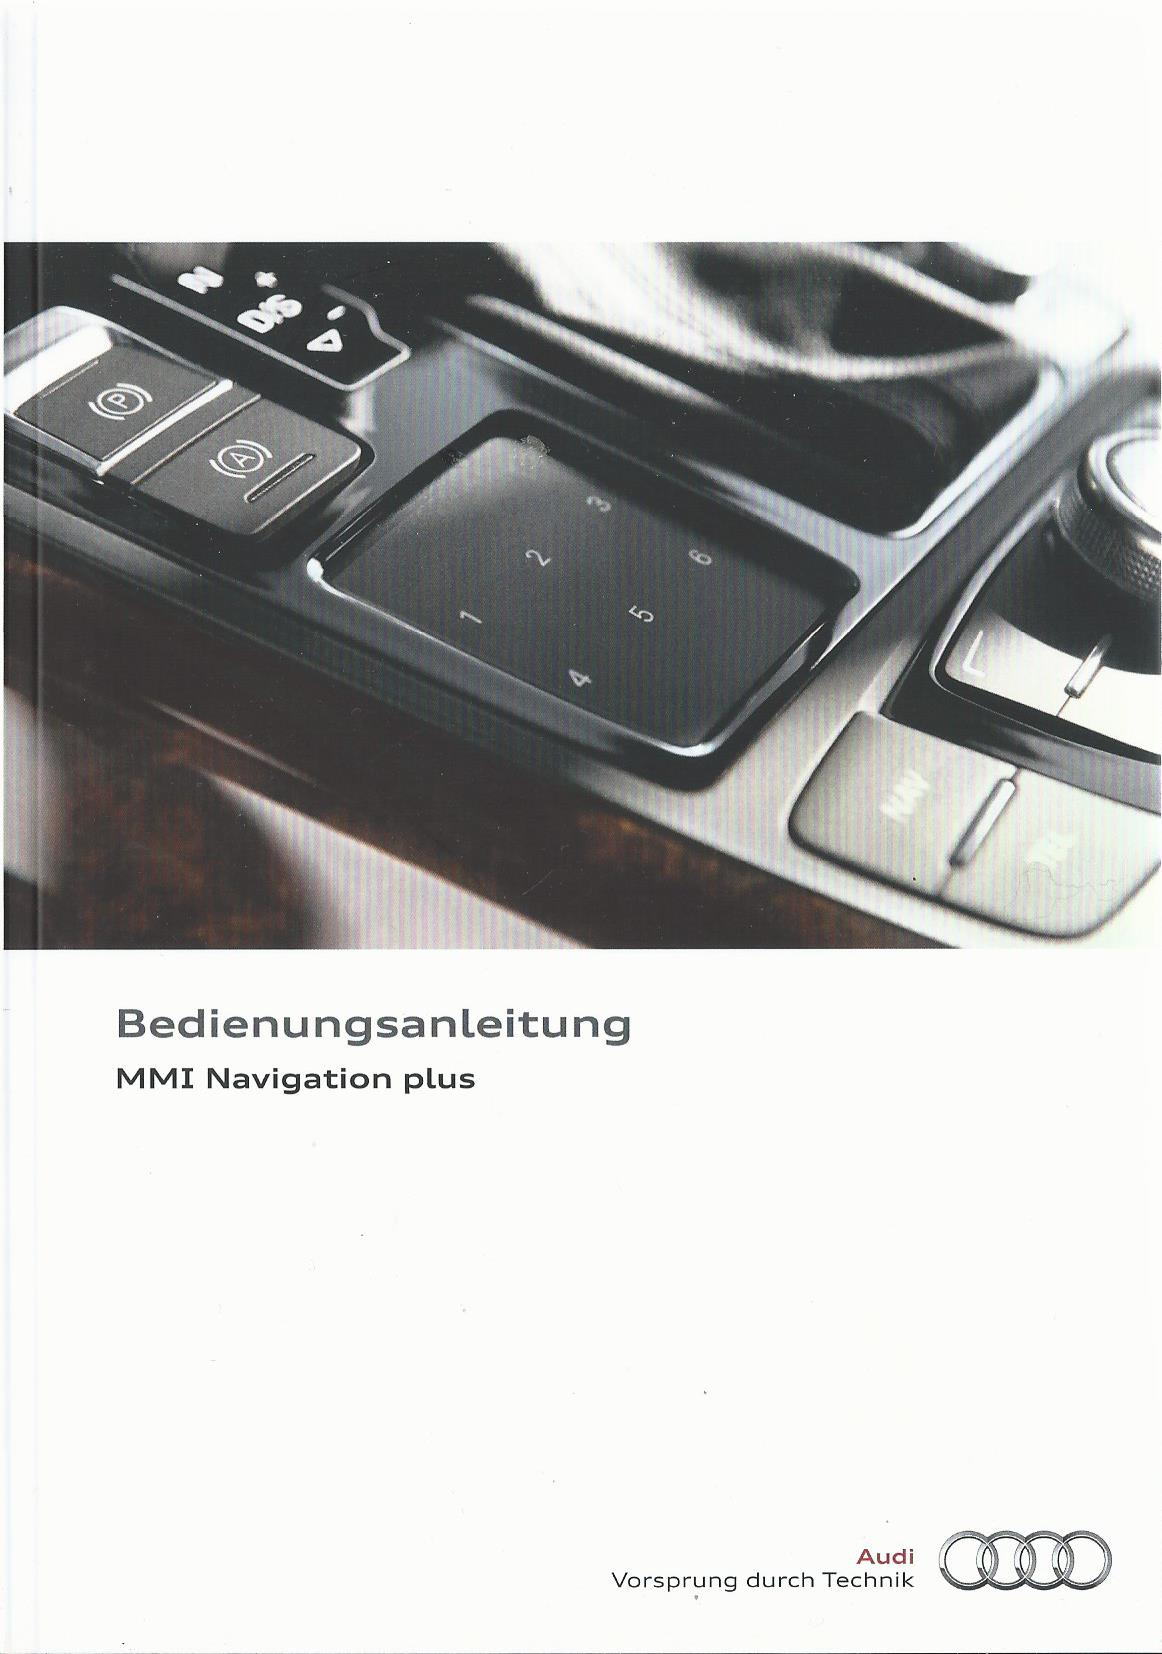 audi mmi navigation plus betriebsanleitung 2014 2015 bedienungsanleitung 6mh rn ebay. Black Bedroom Furniture Sets. Home Design Ideas